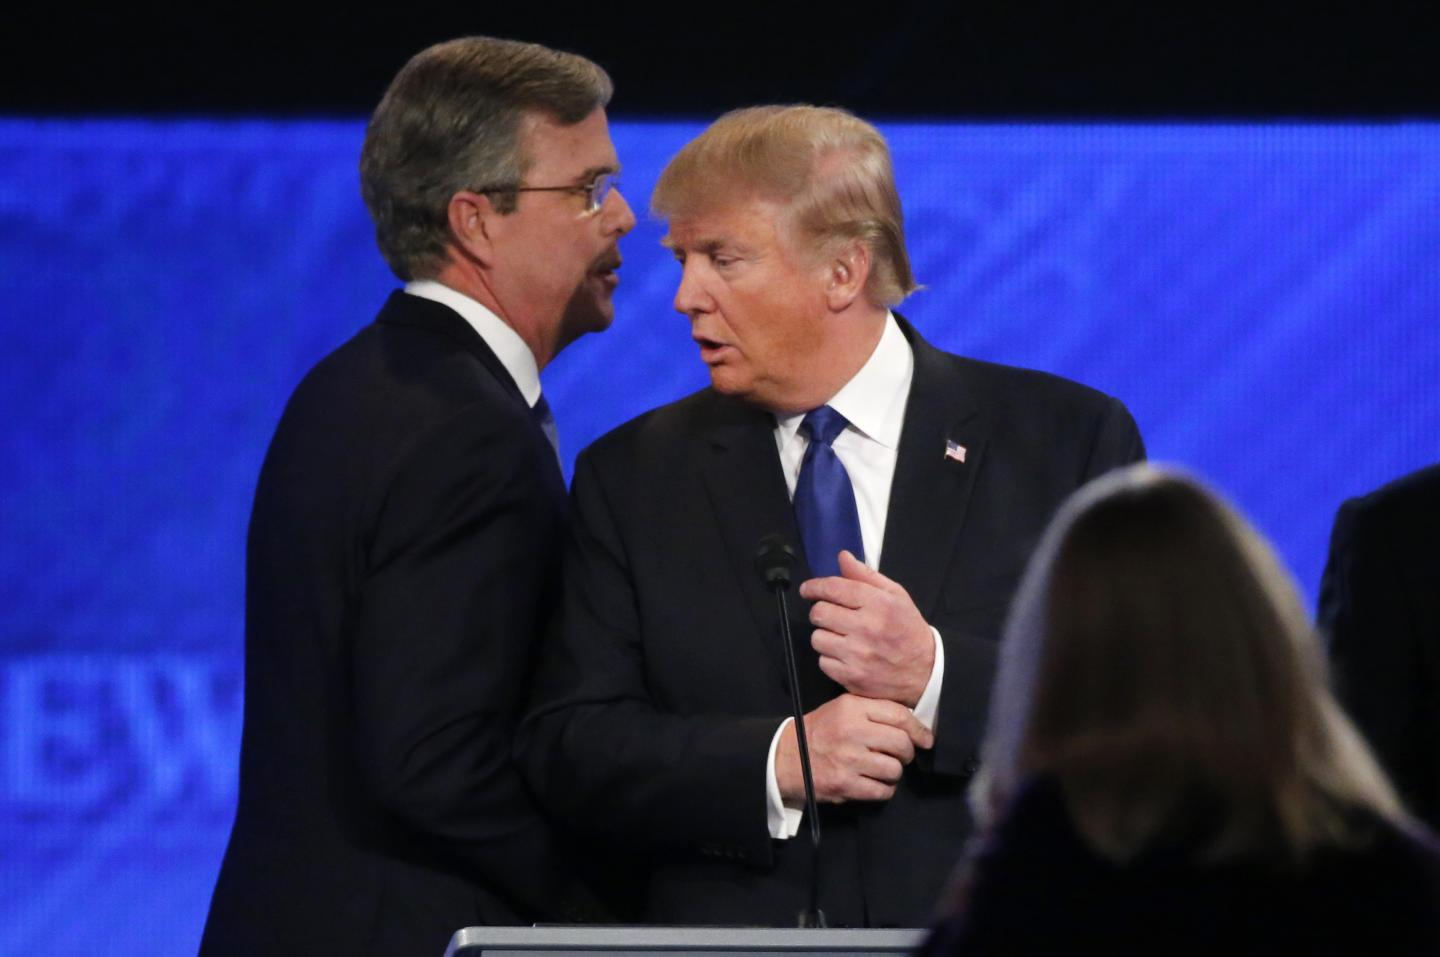 Governor Jeb Bush whispers to rival candidate Donald Trump as he passes behind him at the conclusion of the Republican U.S. presidential candidates debate on February 6, 2016. REUTERS